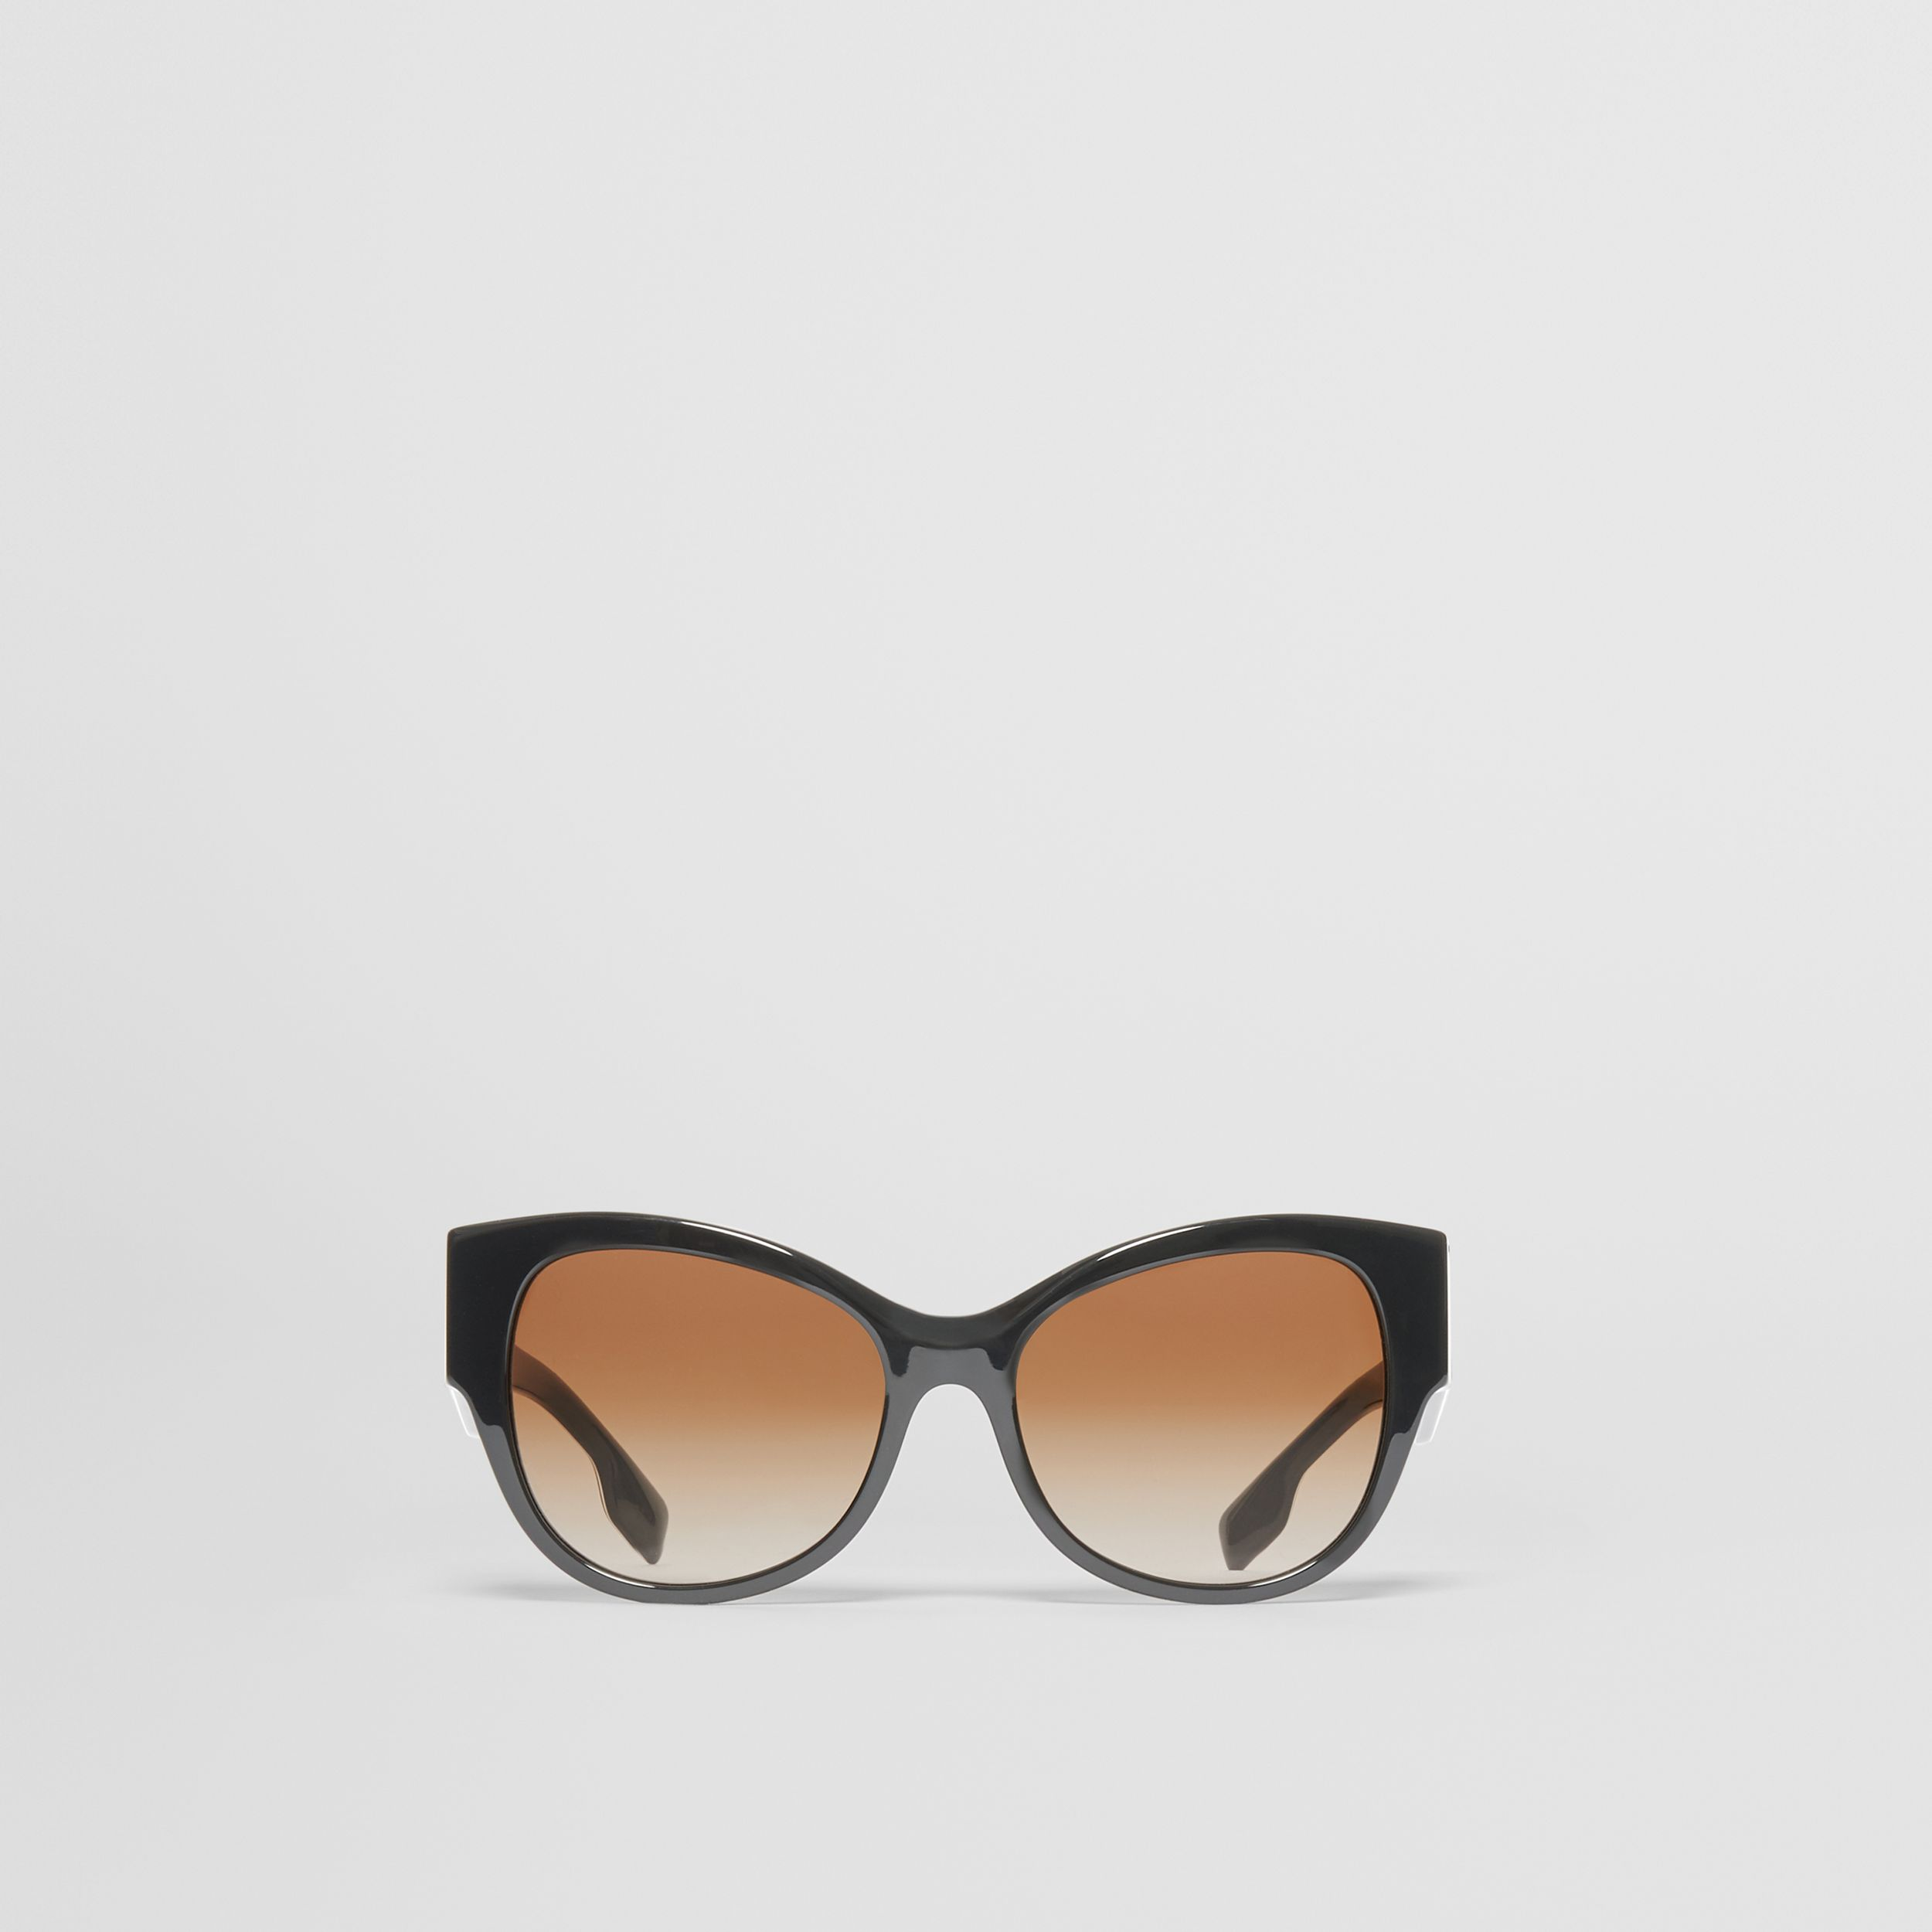 Monogram Detail Butterfly Frame Sunglasses in Black/vermillion - Women | Burberry - 1